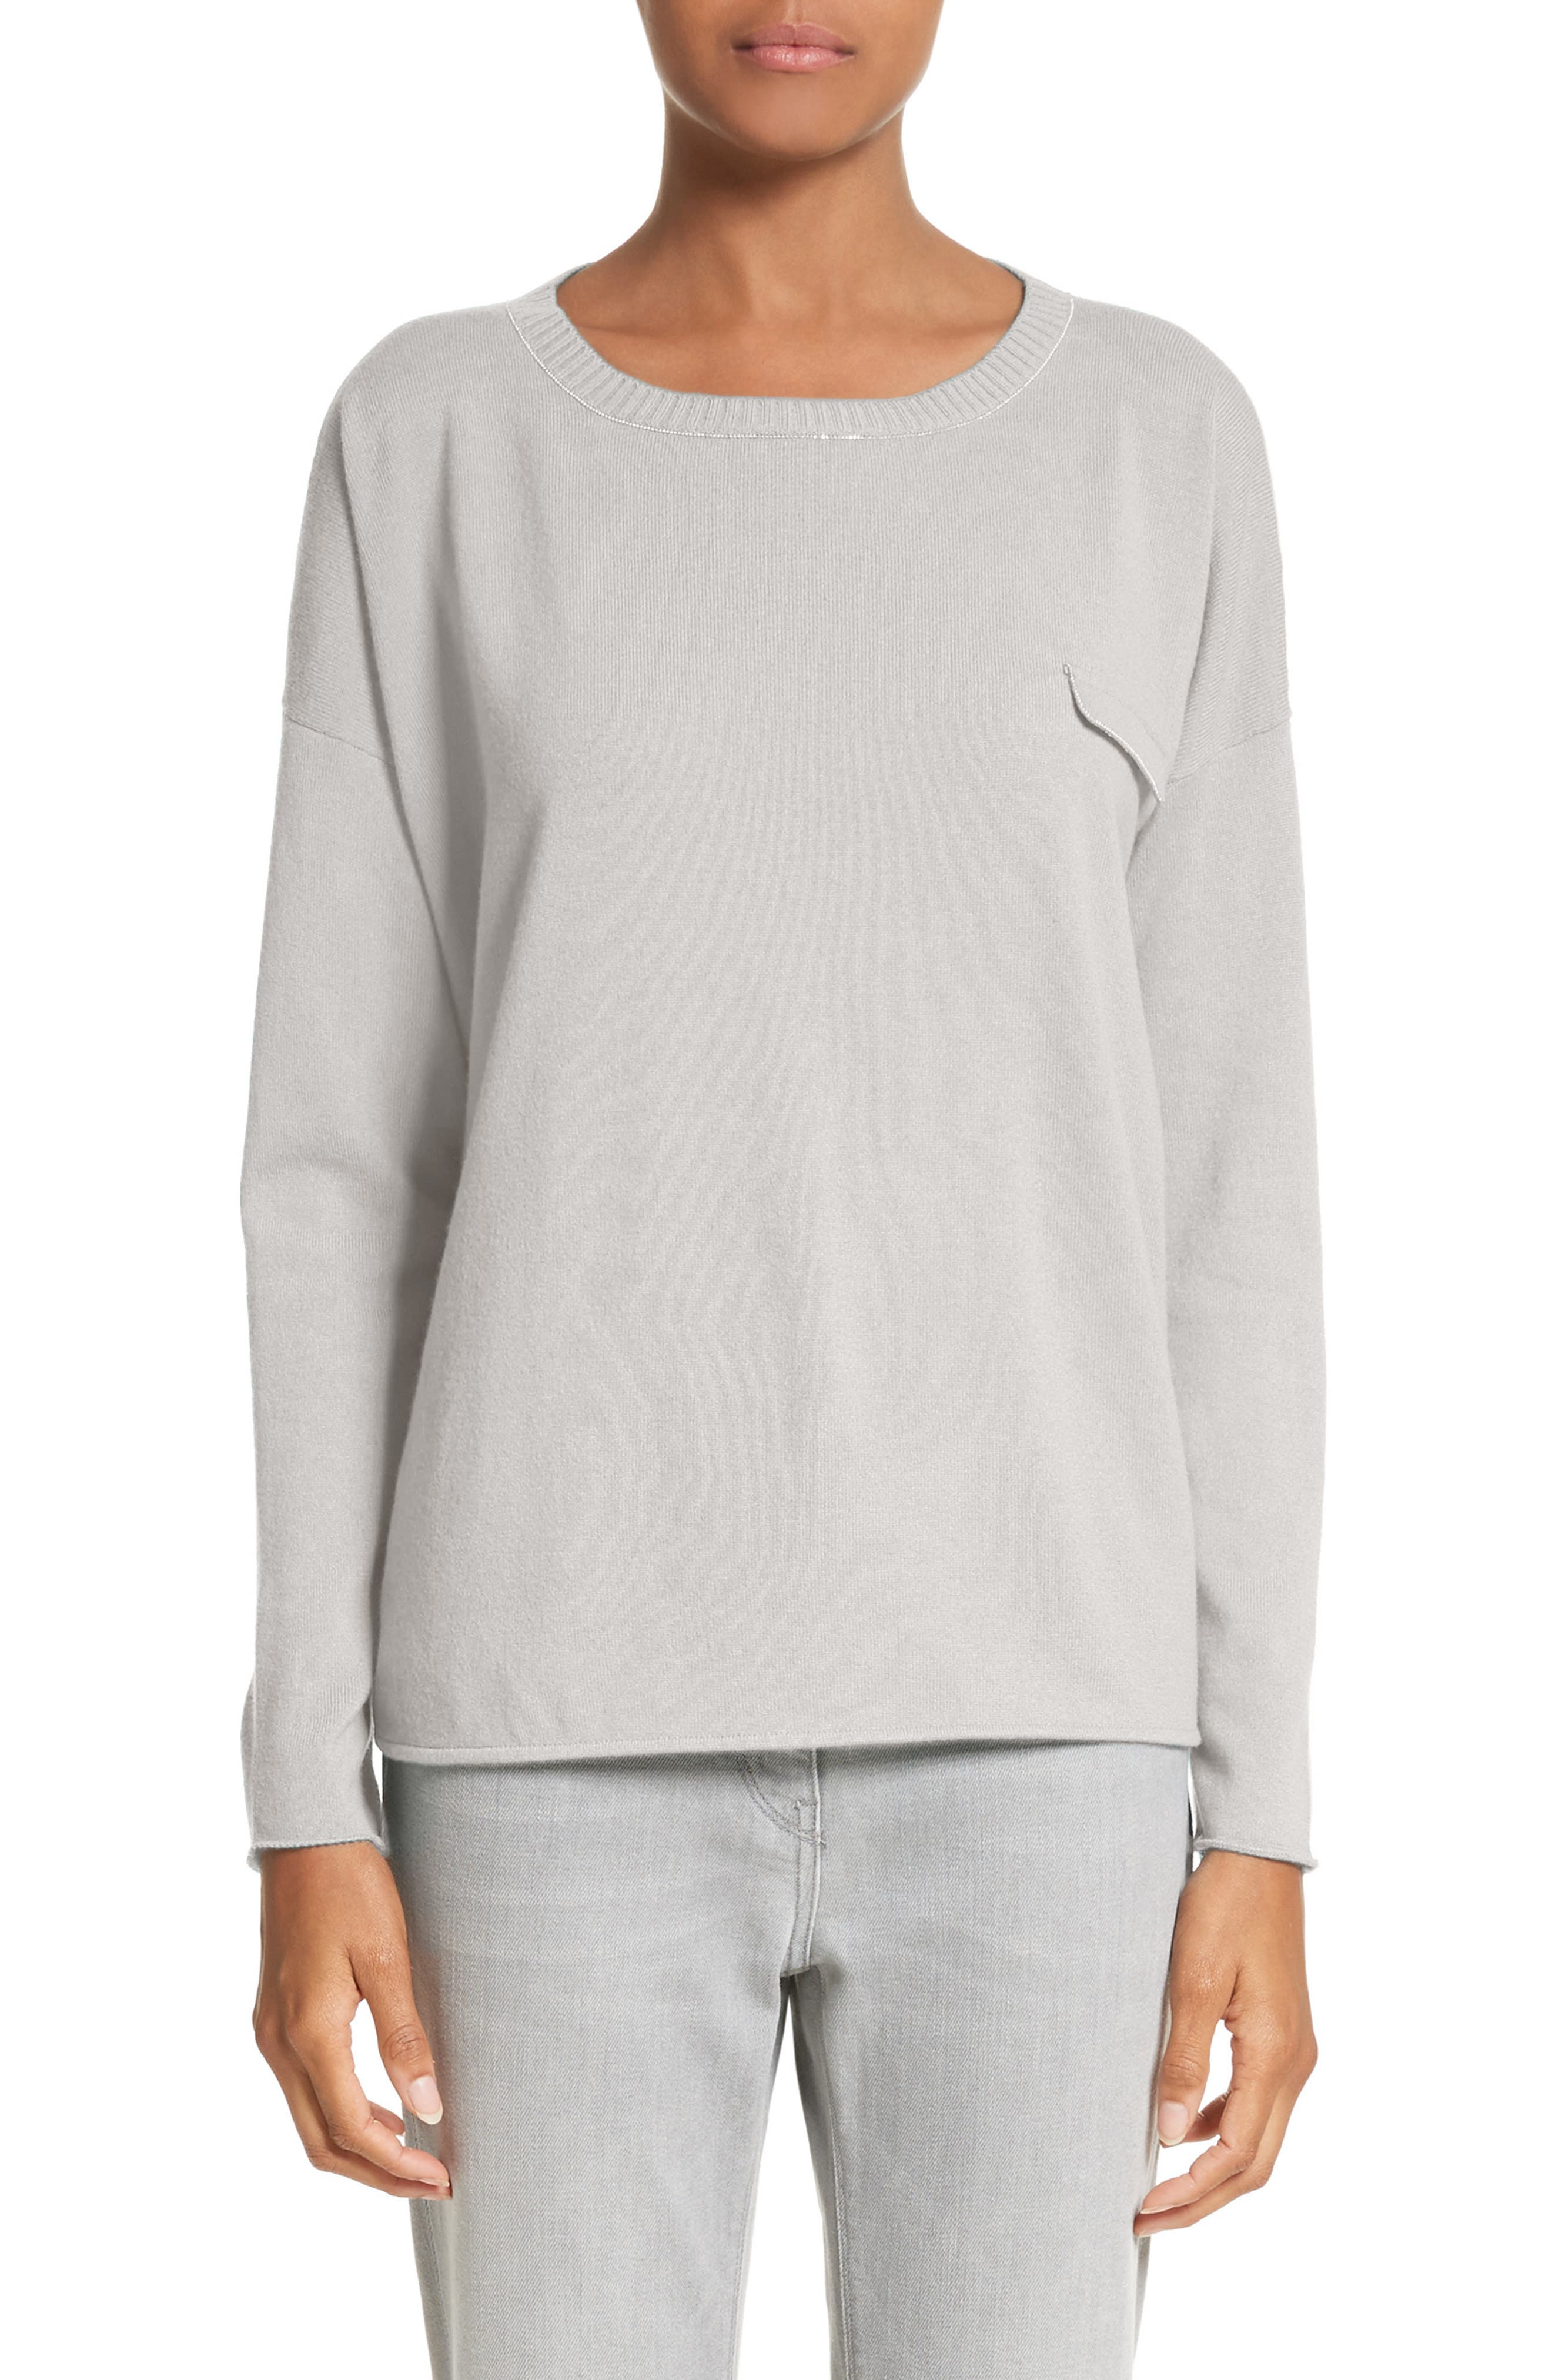 Beaded Cashmere Sweater,                         Main,                         color, Grey